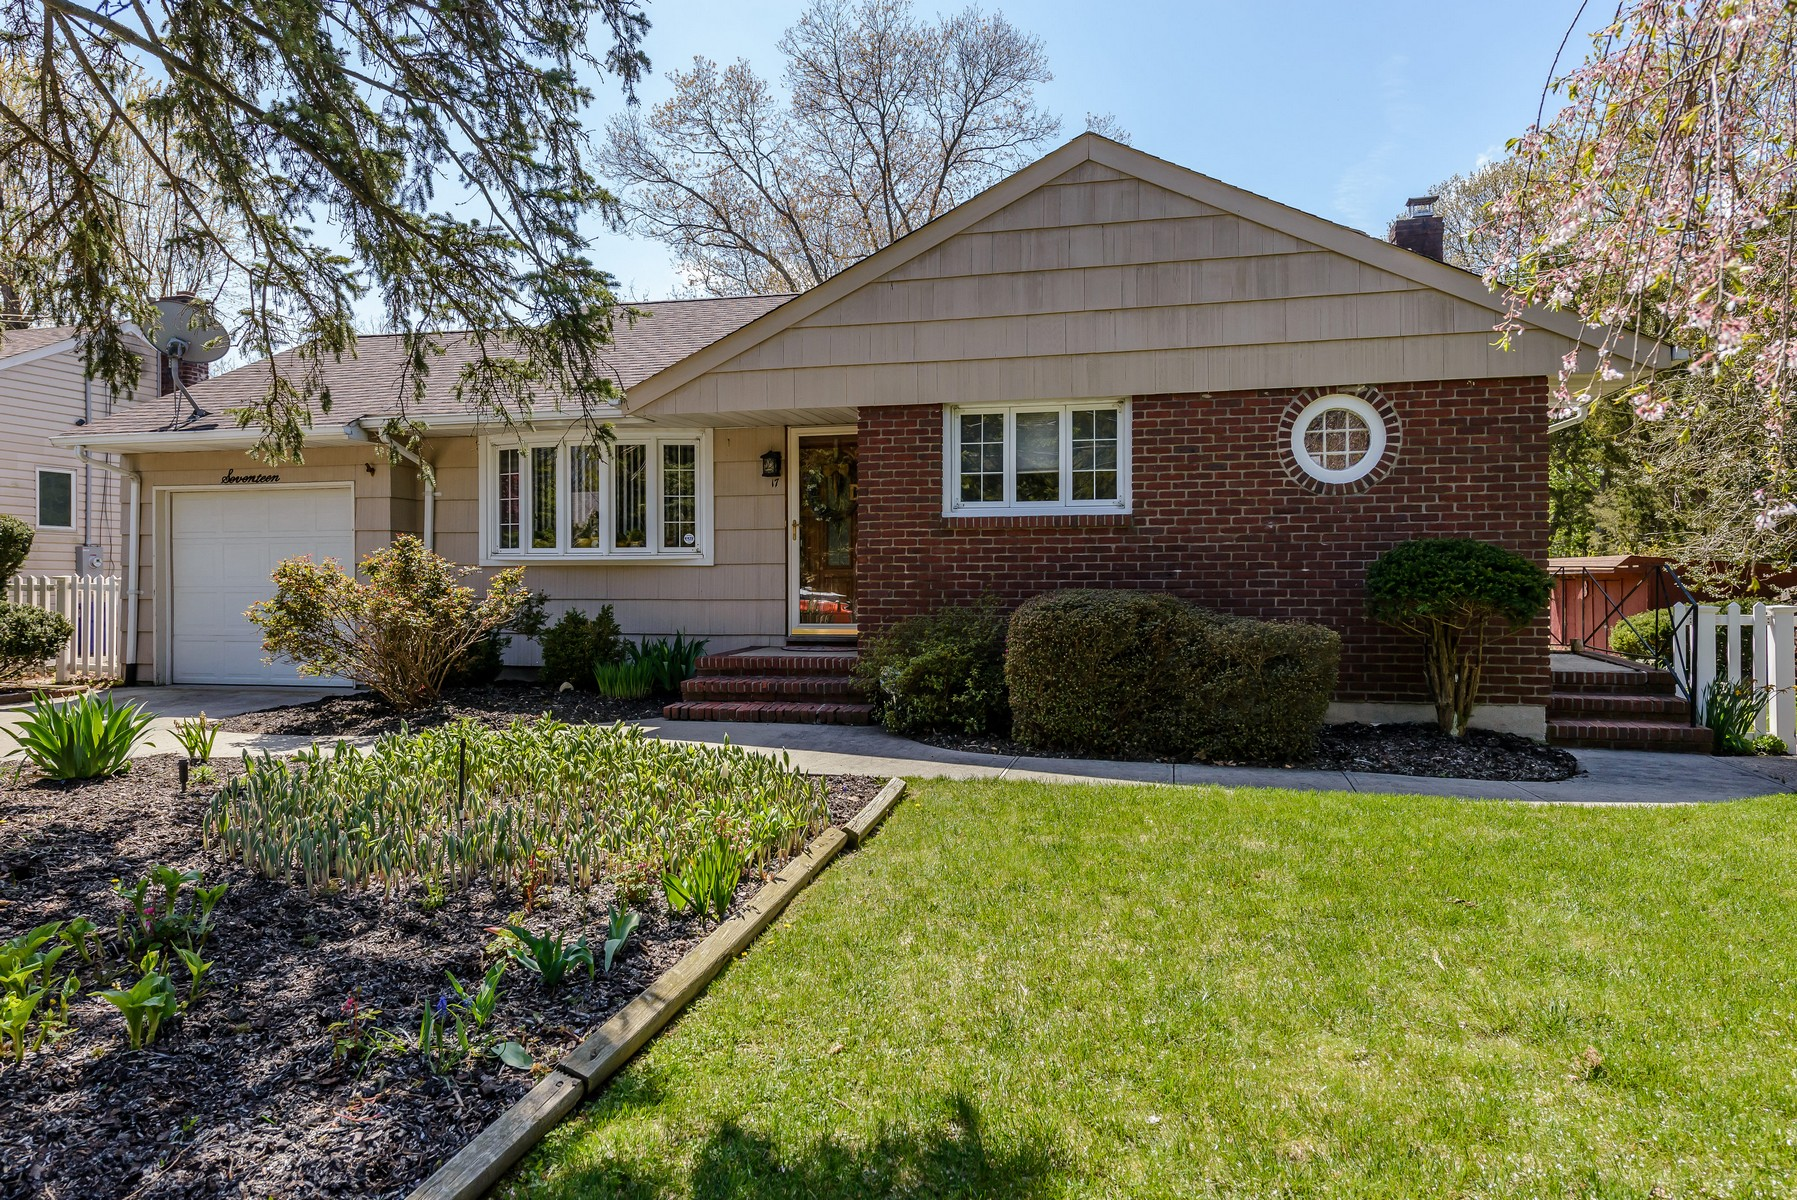 Single Family Home for Sale at Ranch 17 Lebkamp Ave Huntington, New York, 11743 United States